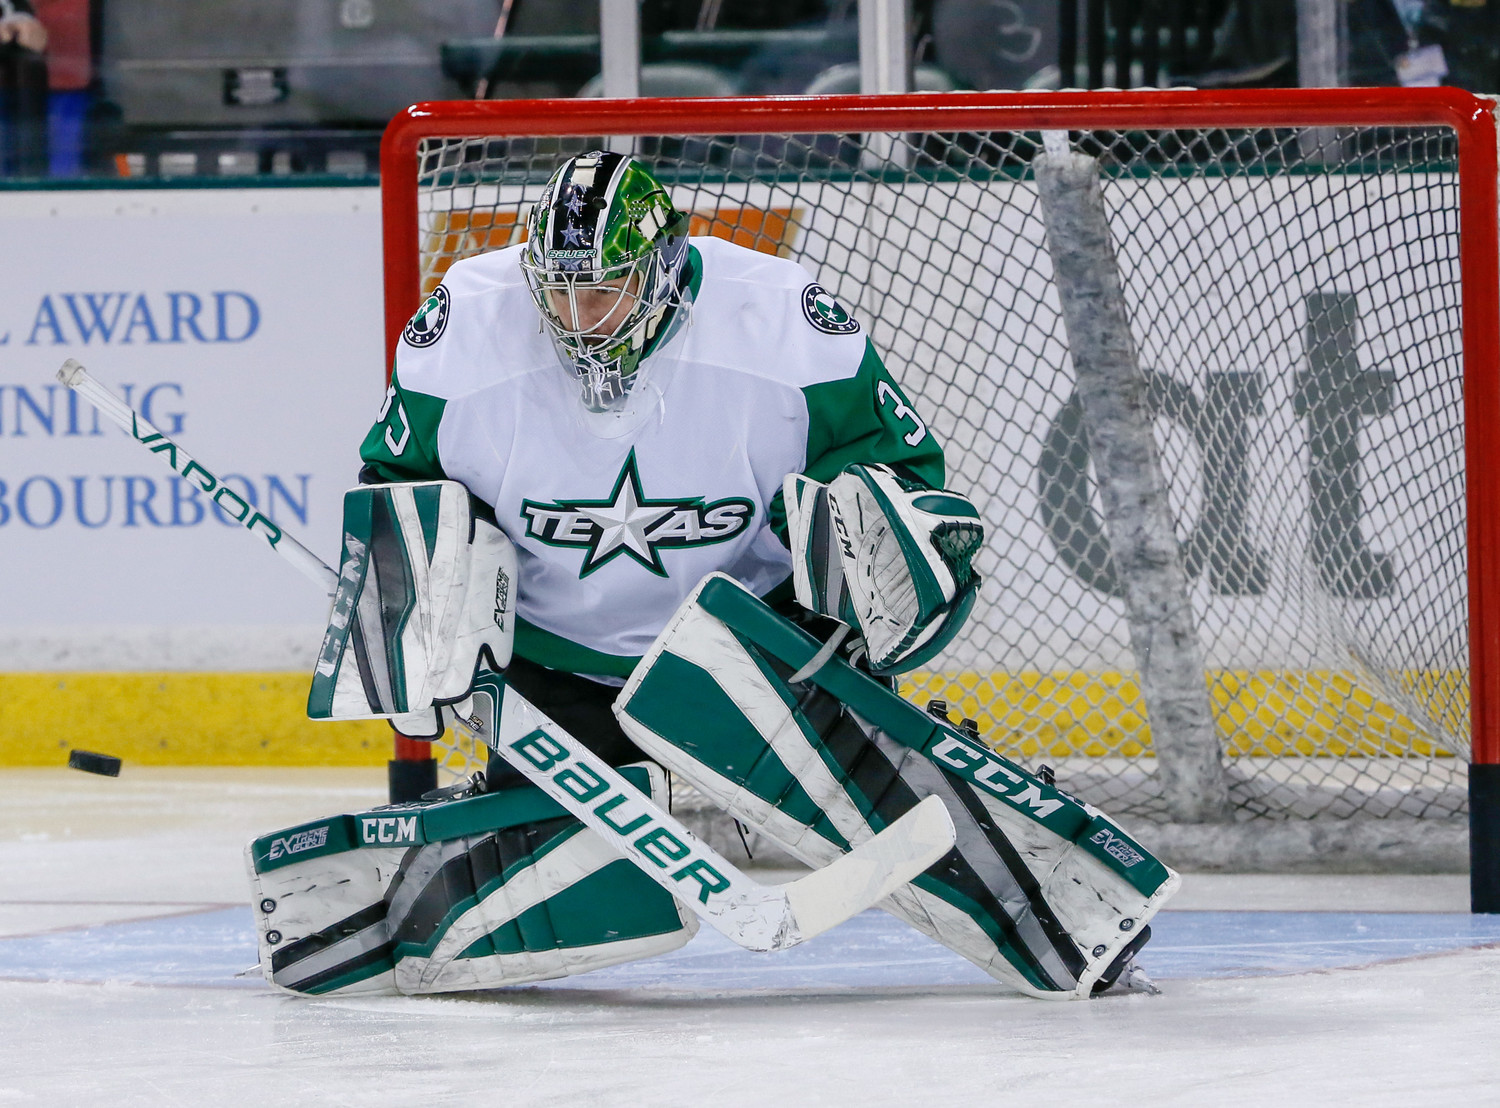 Texas Stars goalie Landon Bow leads all AHL rookies with 11 wins this season. He is 5th in the league with a 3.00 goals against average.